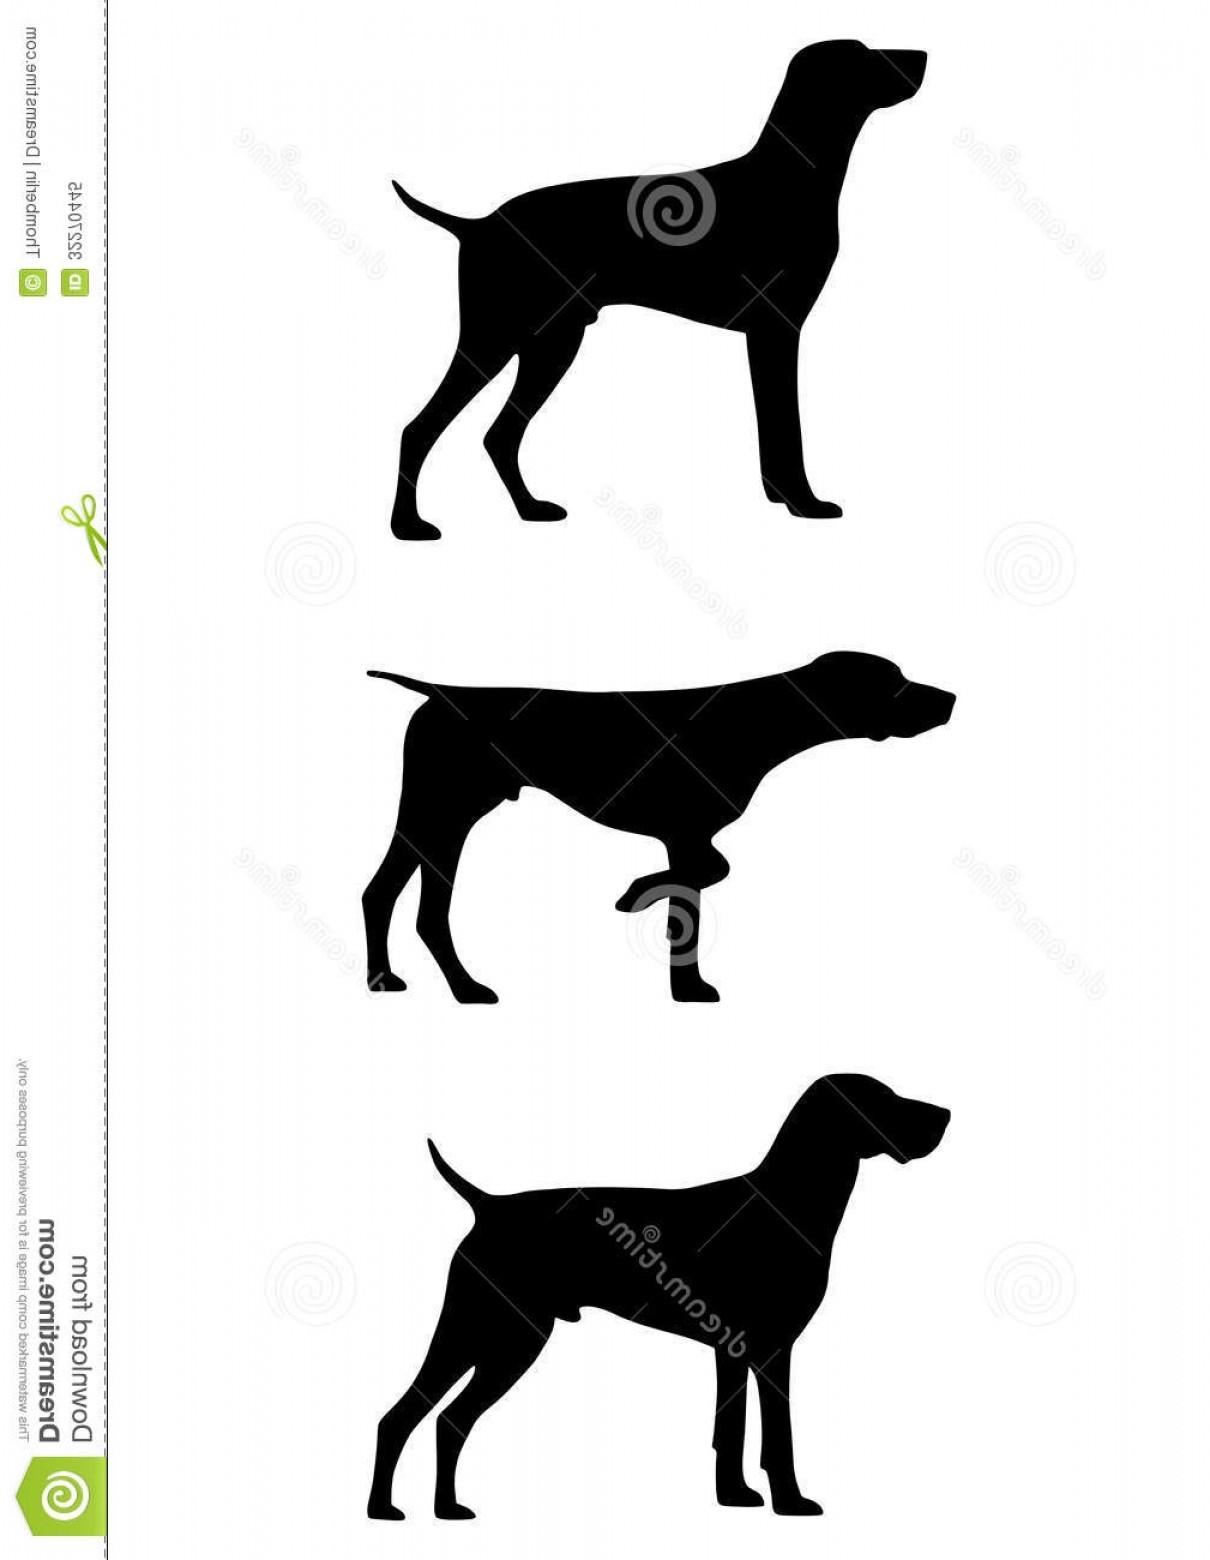 Pointer Dog Vector: Royalty Free Stock Photo German Shorthaired Pointer Gsp Breed Dog Developed Th Century Germany Hunting Image